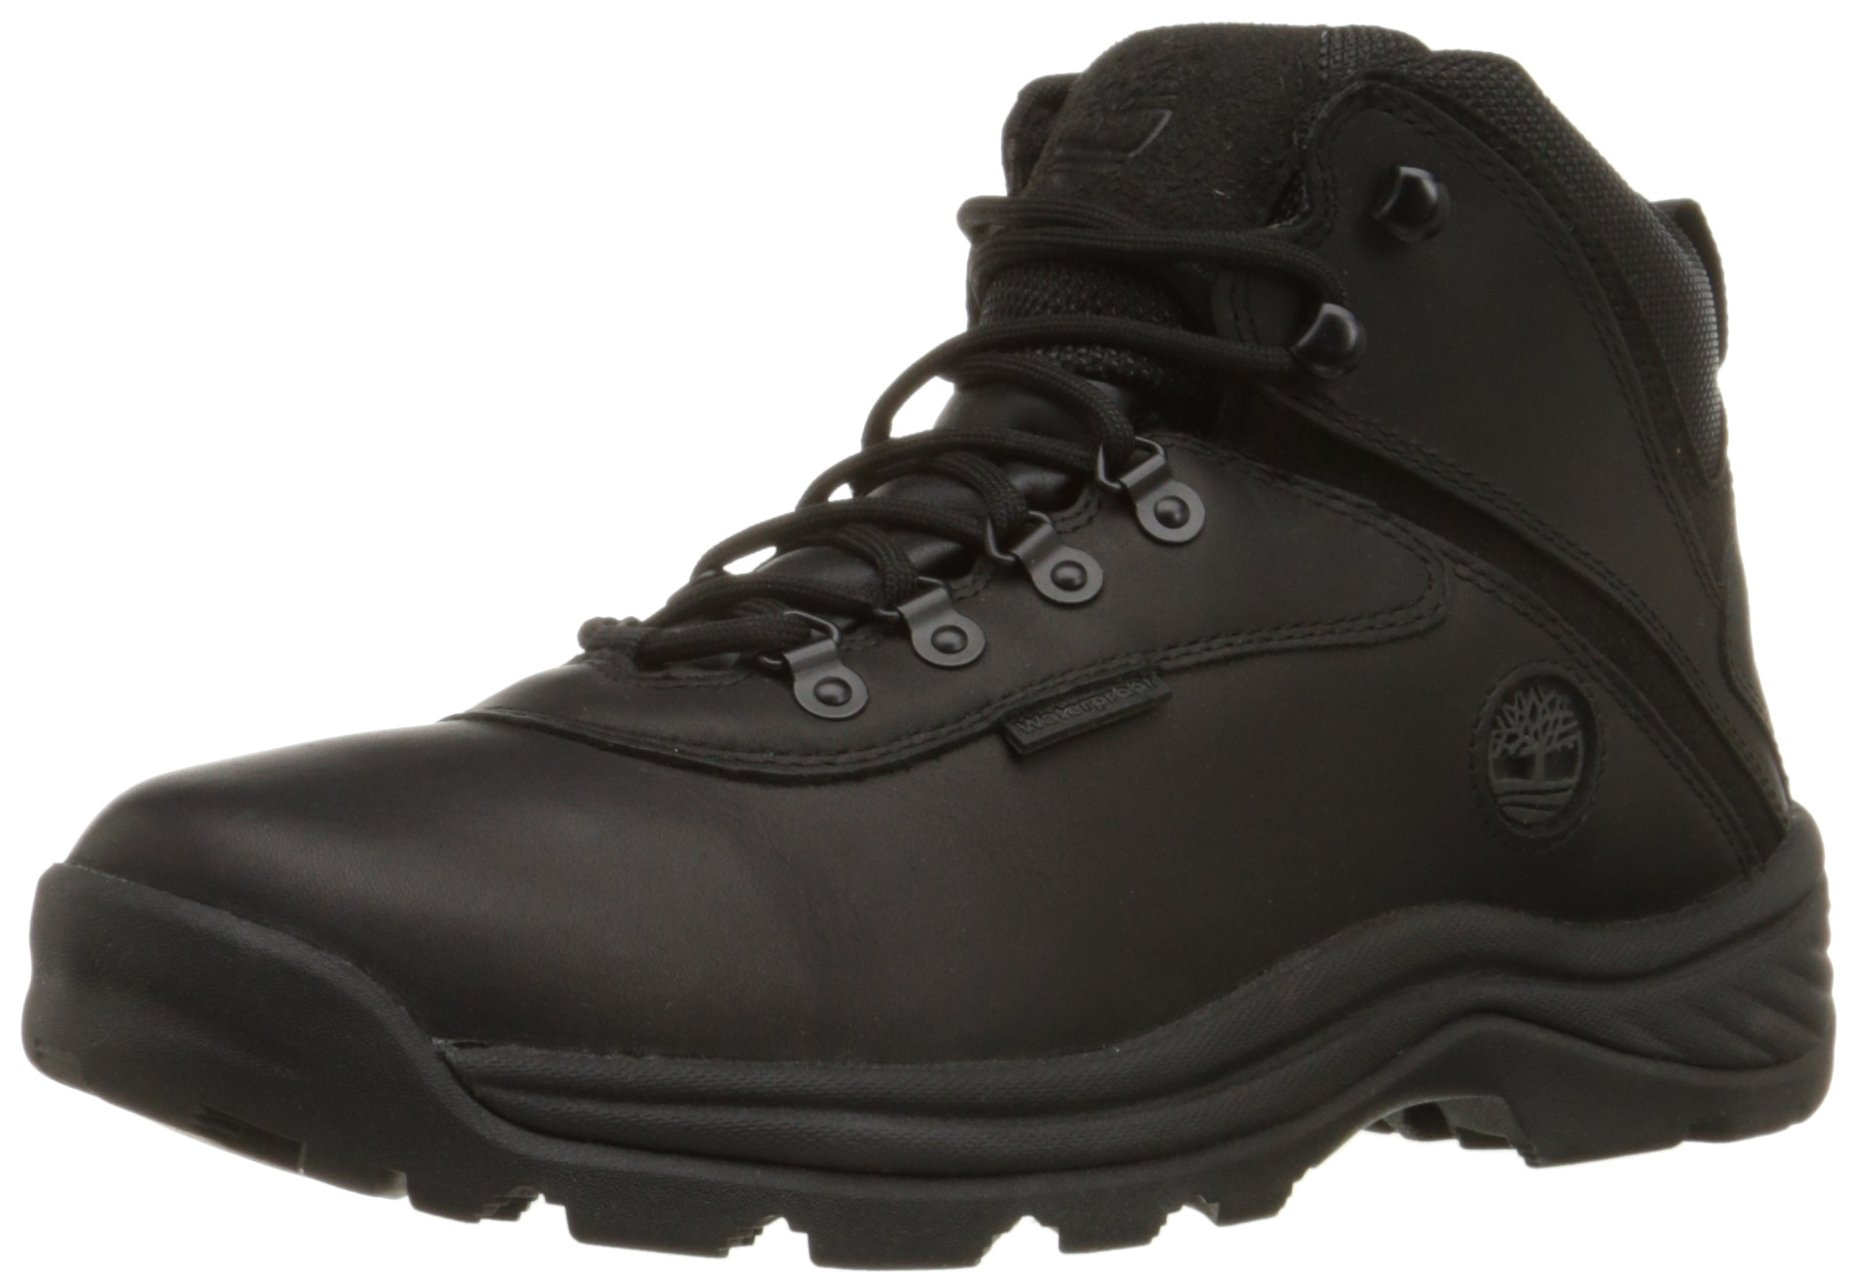 Timberland Men's White Ledge Mid Waterproof Ankle Boot,Black,10 M US by Timberland